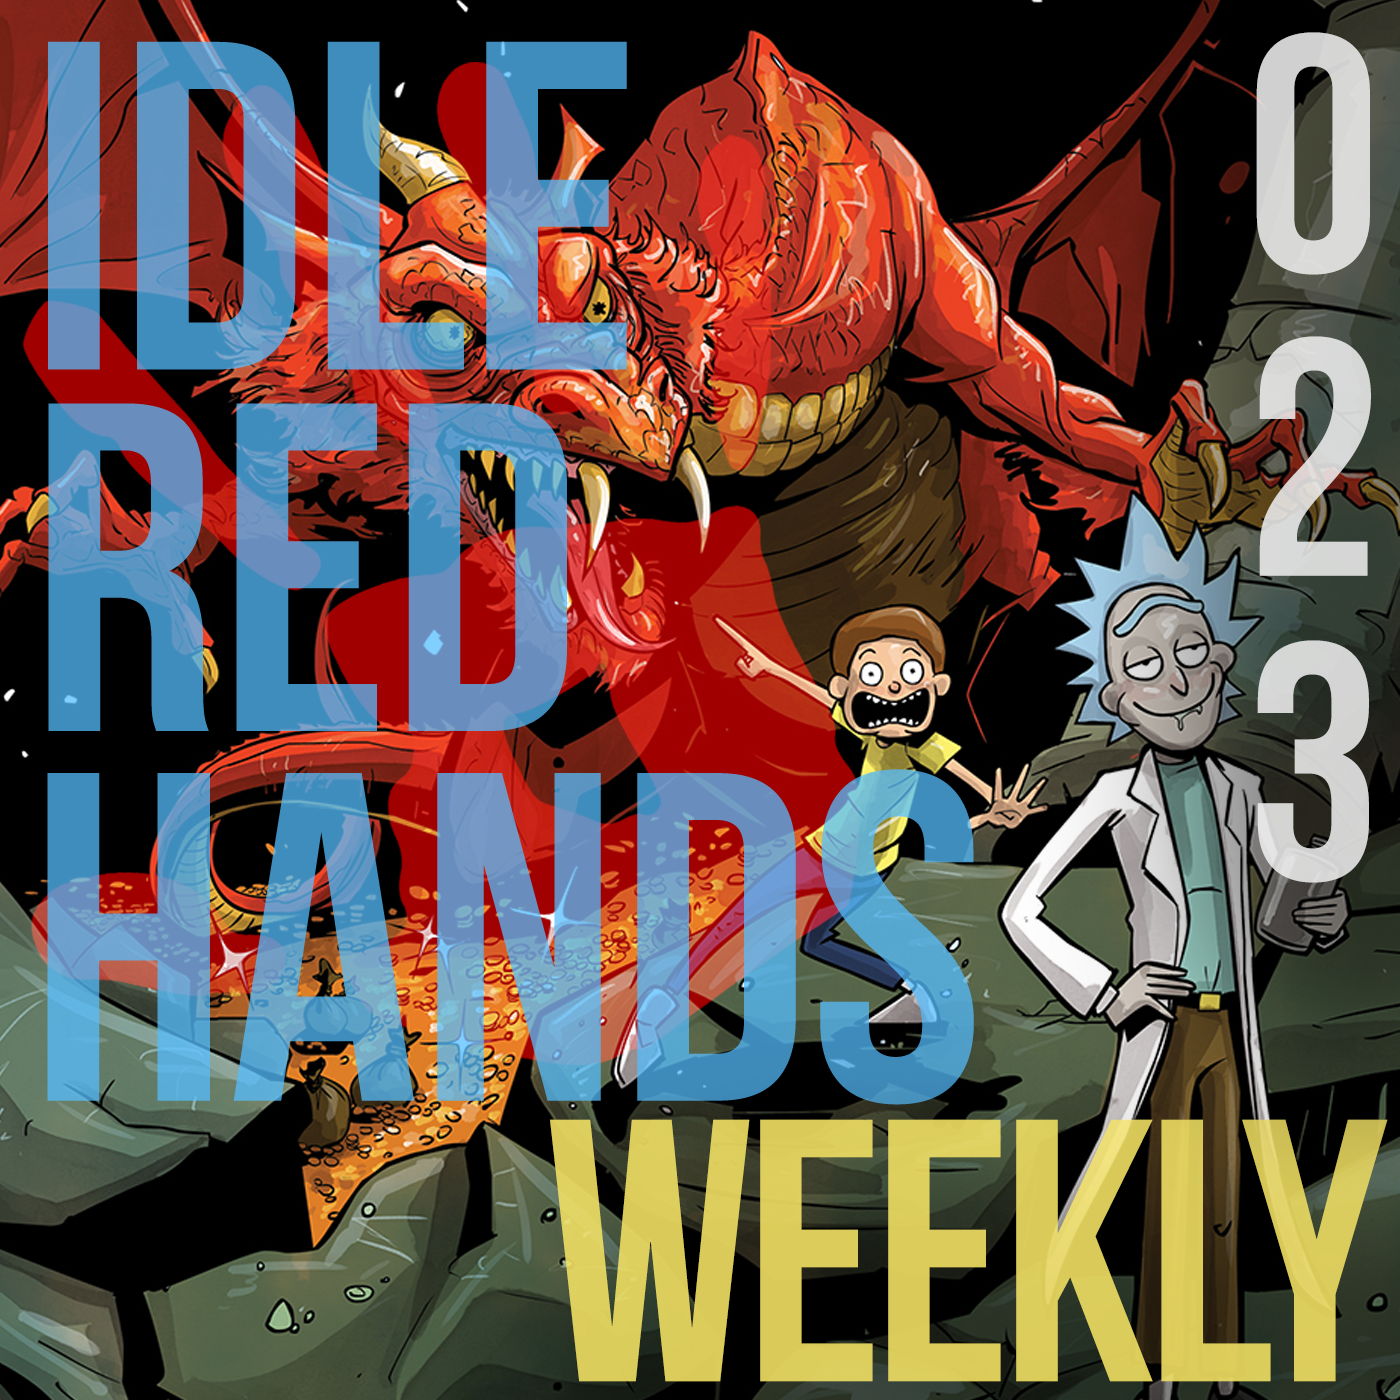 Idle Red Hands Weekly